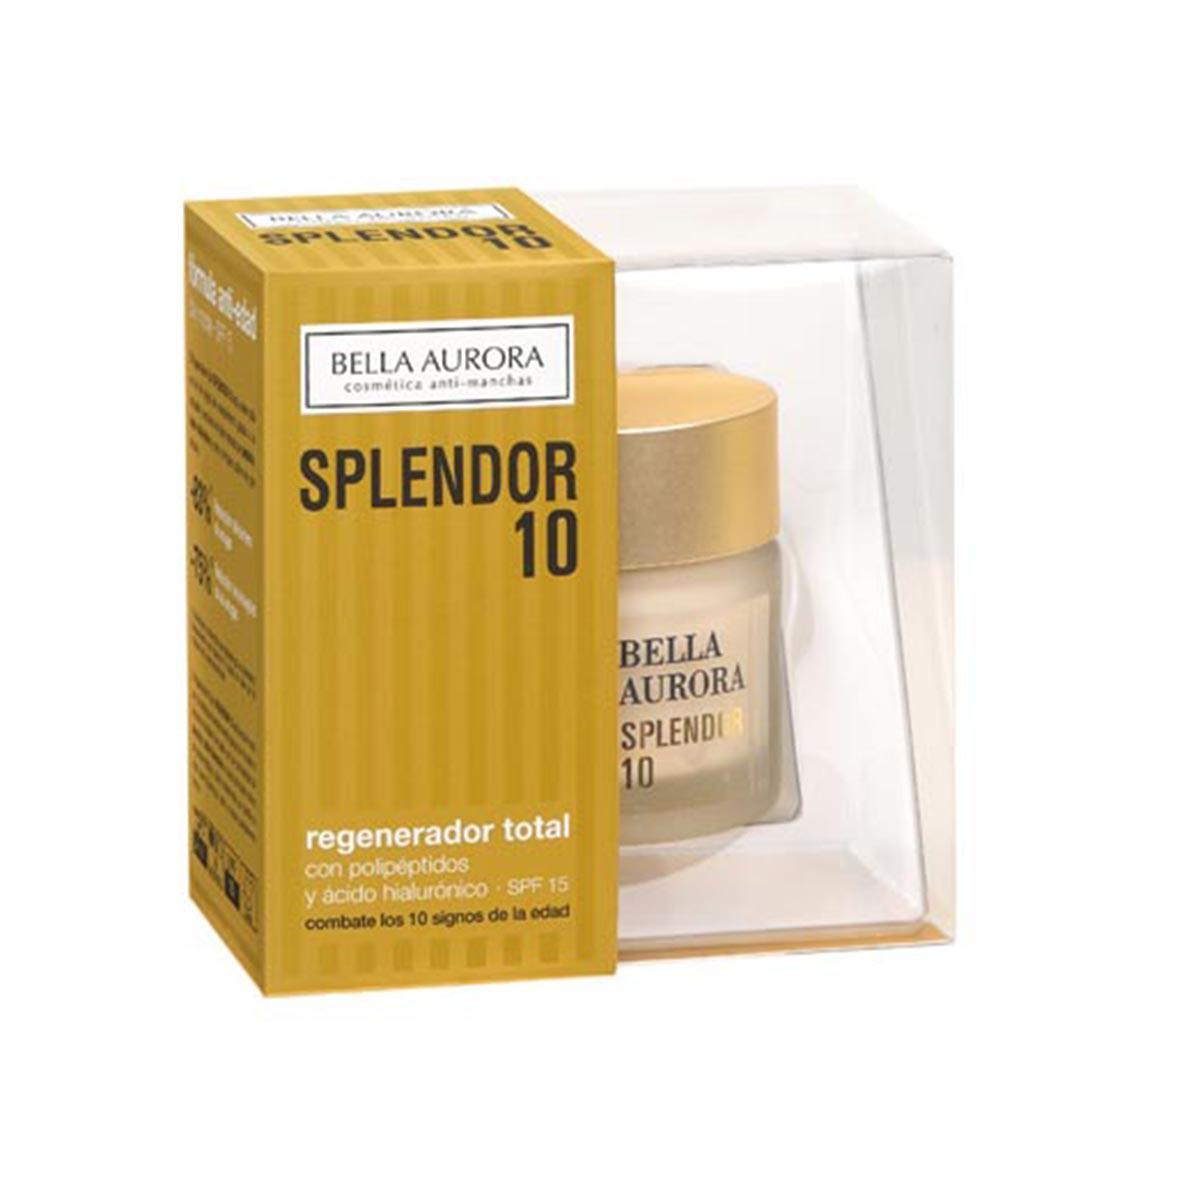 Bella aurora fragrances Splendor 10 Cream 50ml